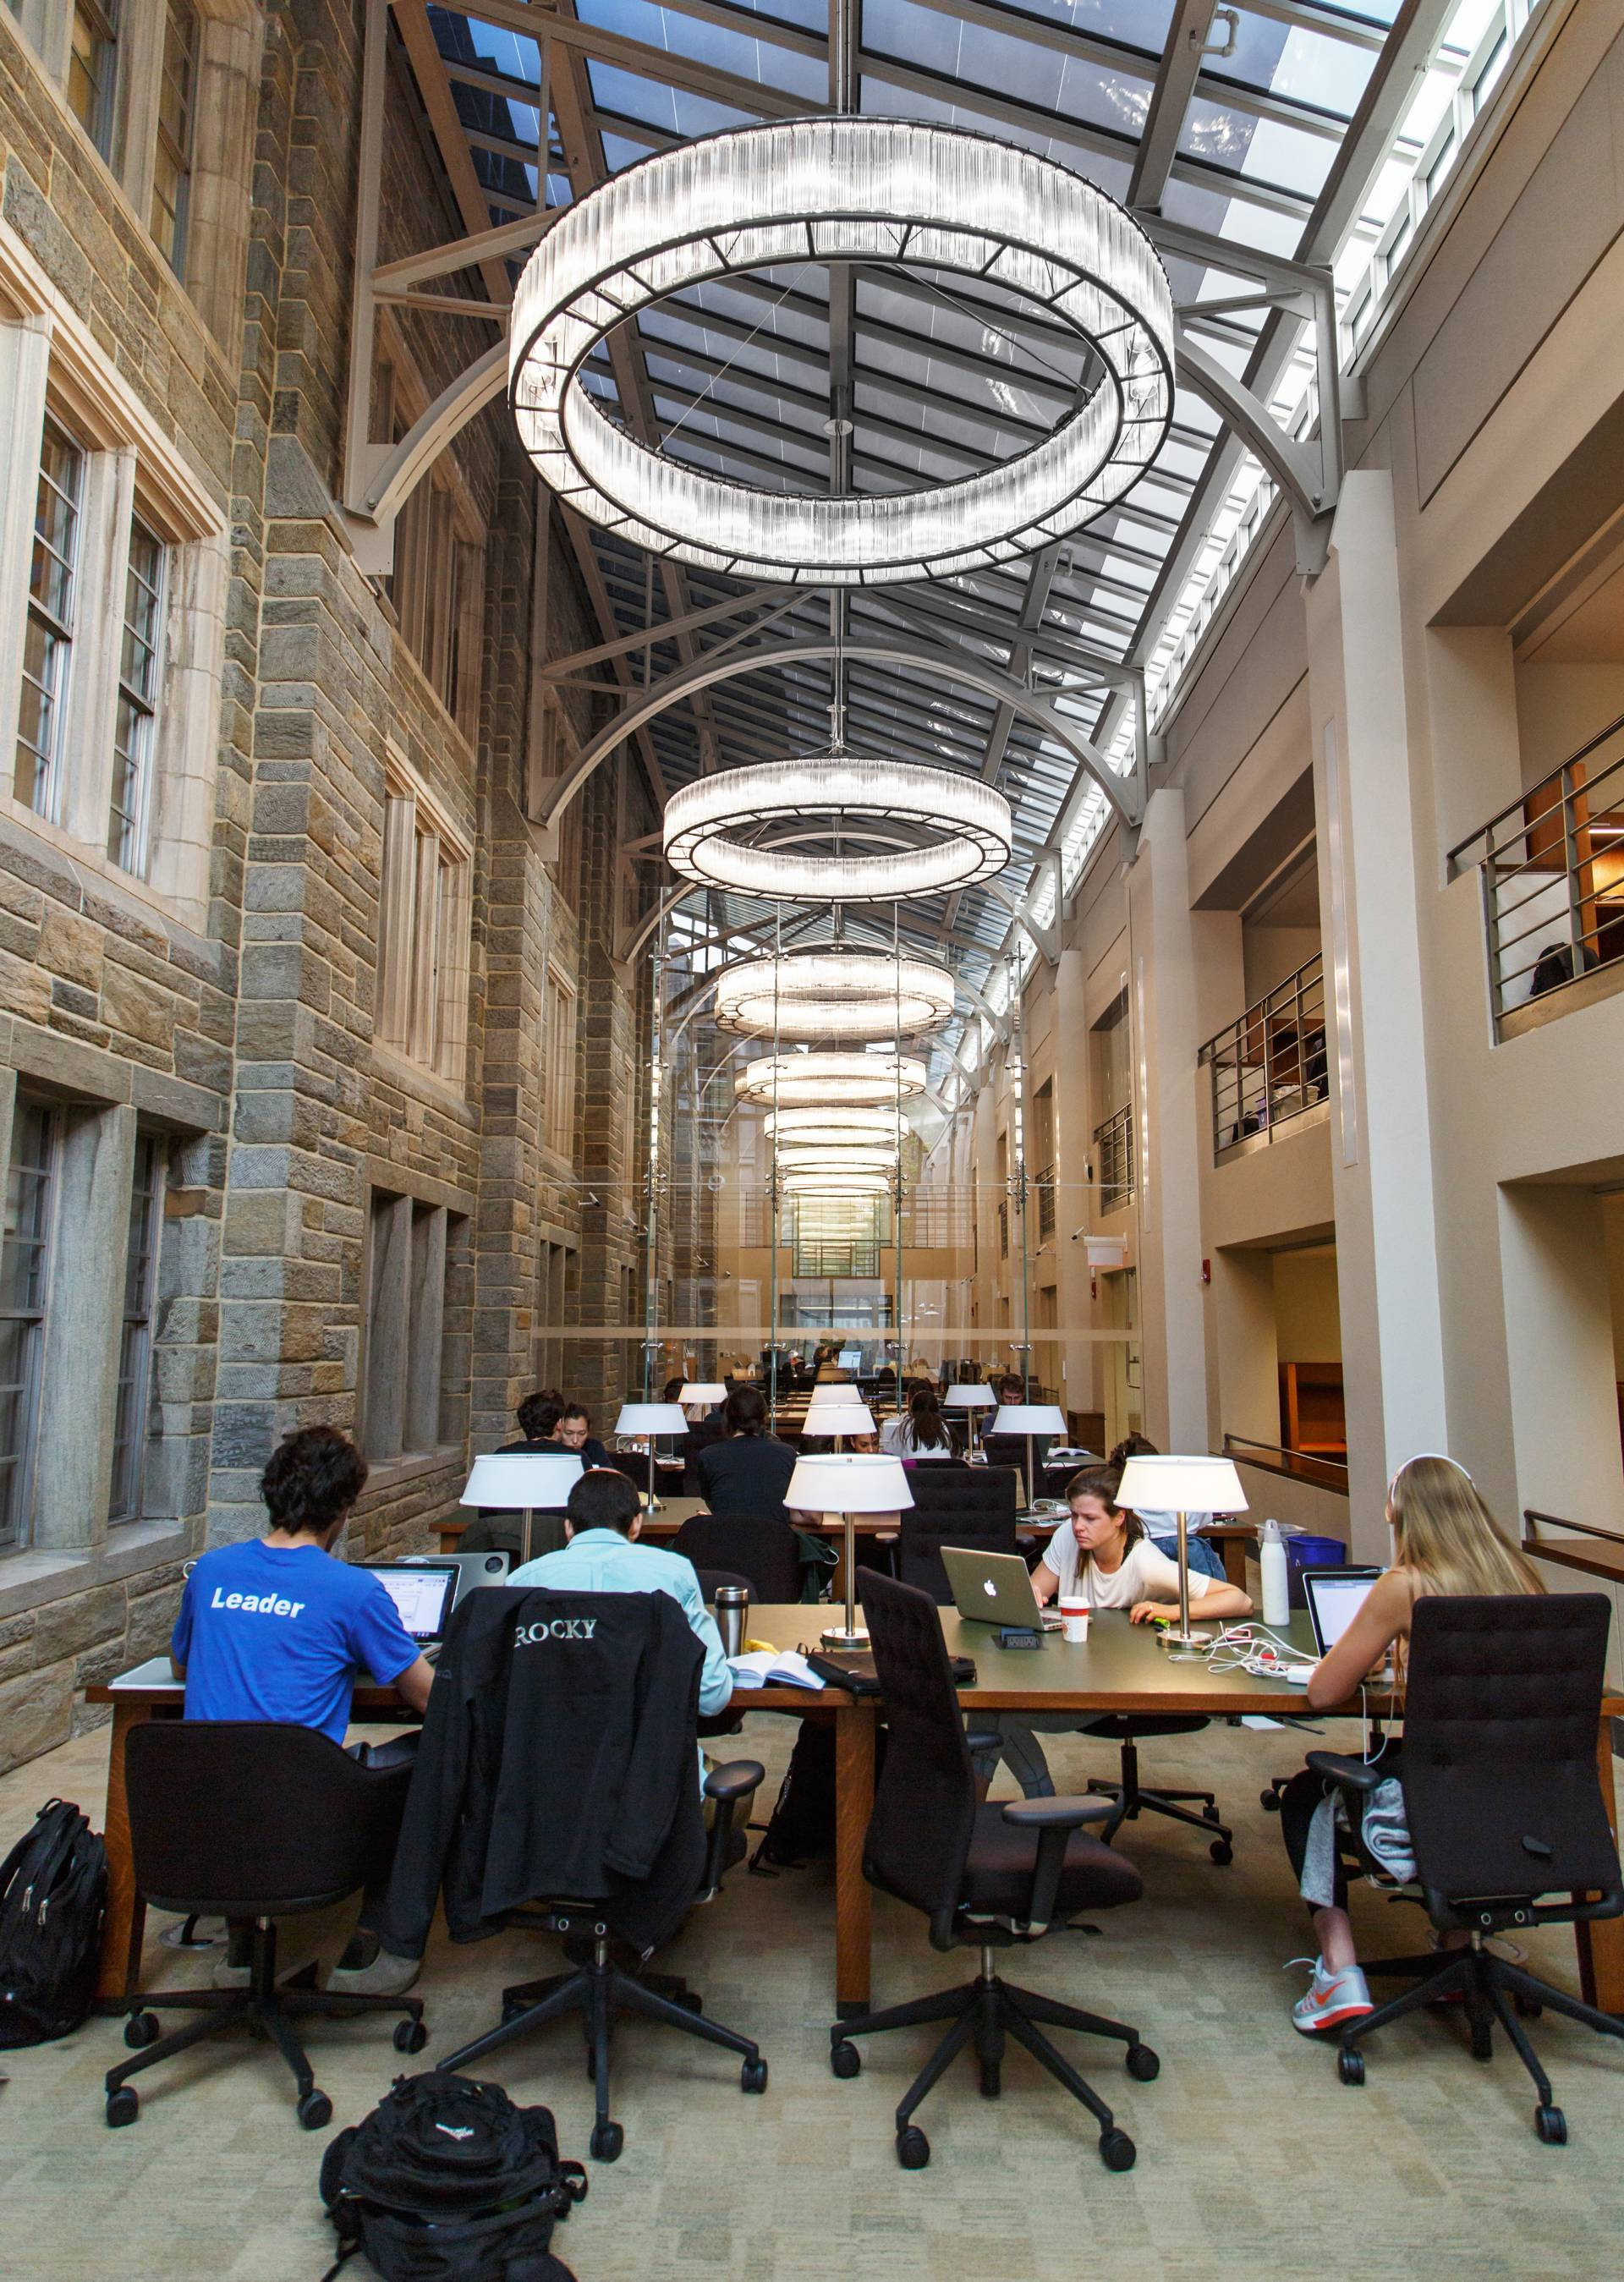 Students studying in library room